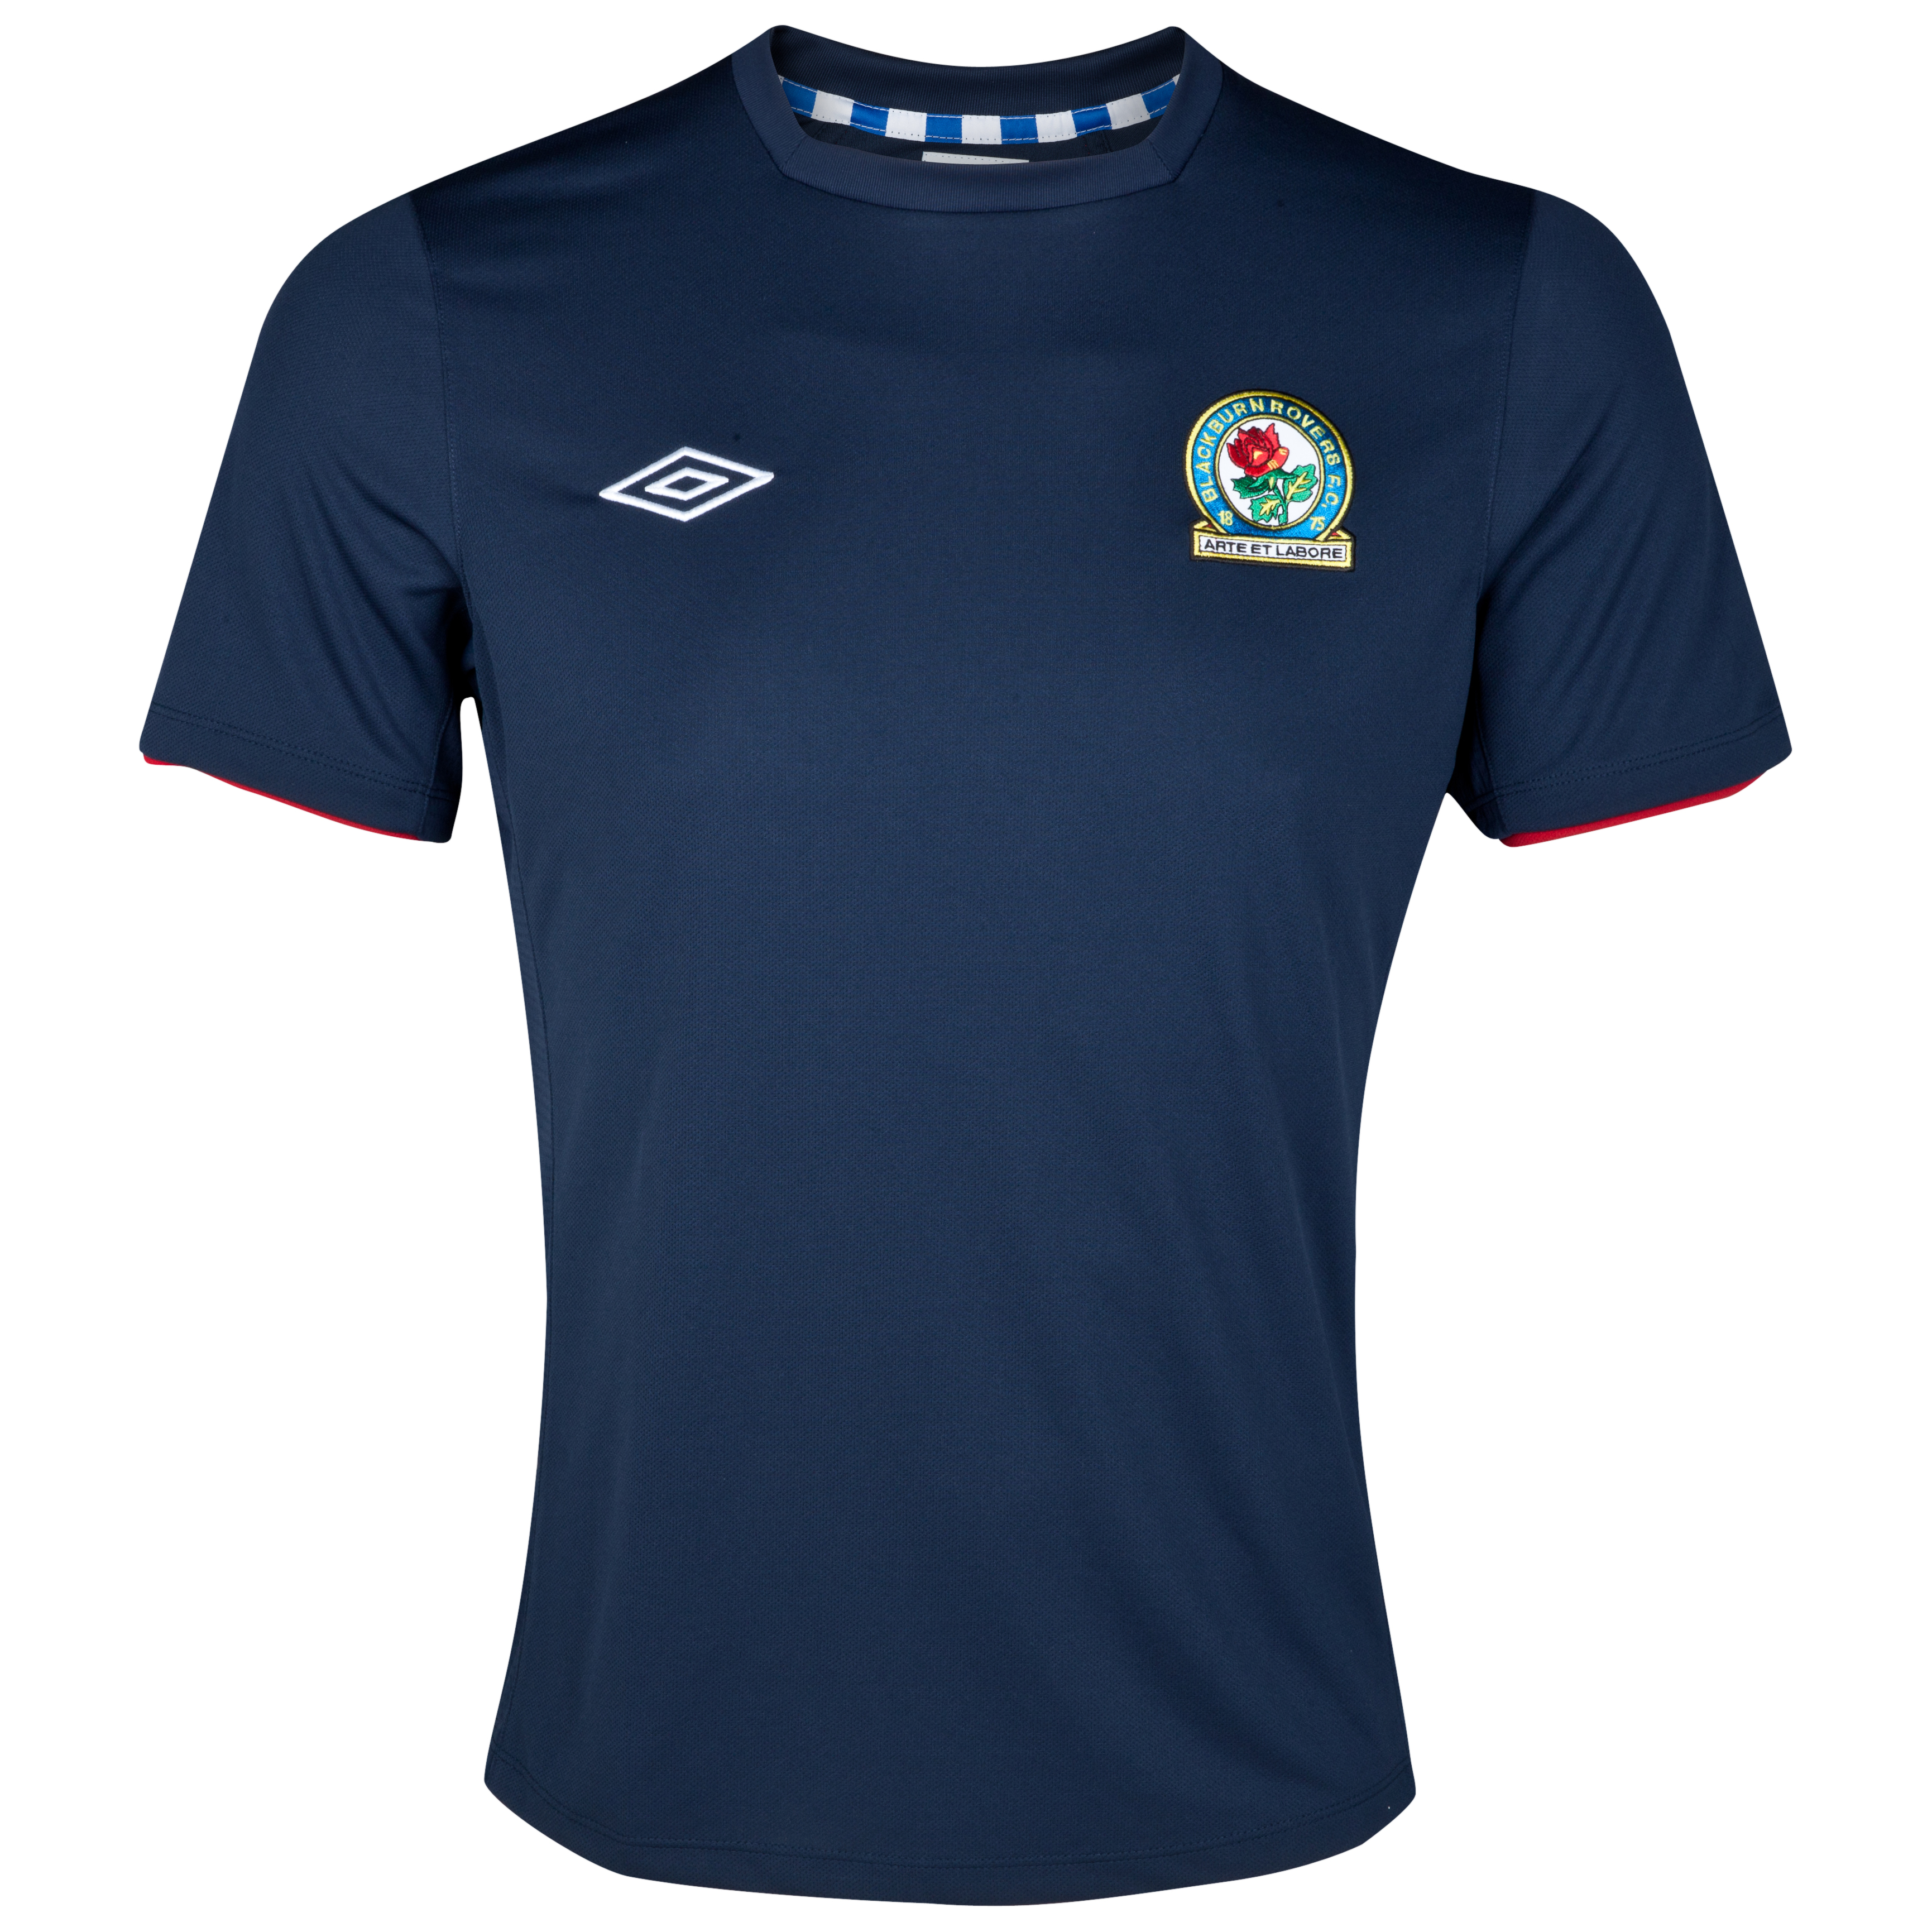 Blackburn Rovers Away Shirt 2012/13